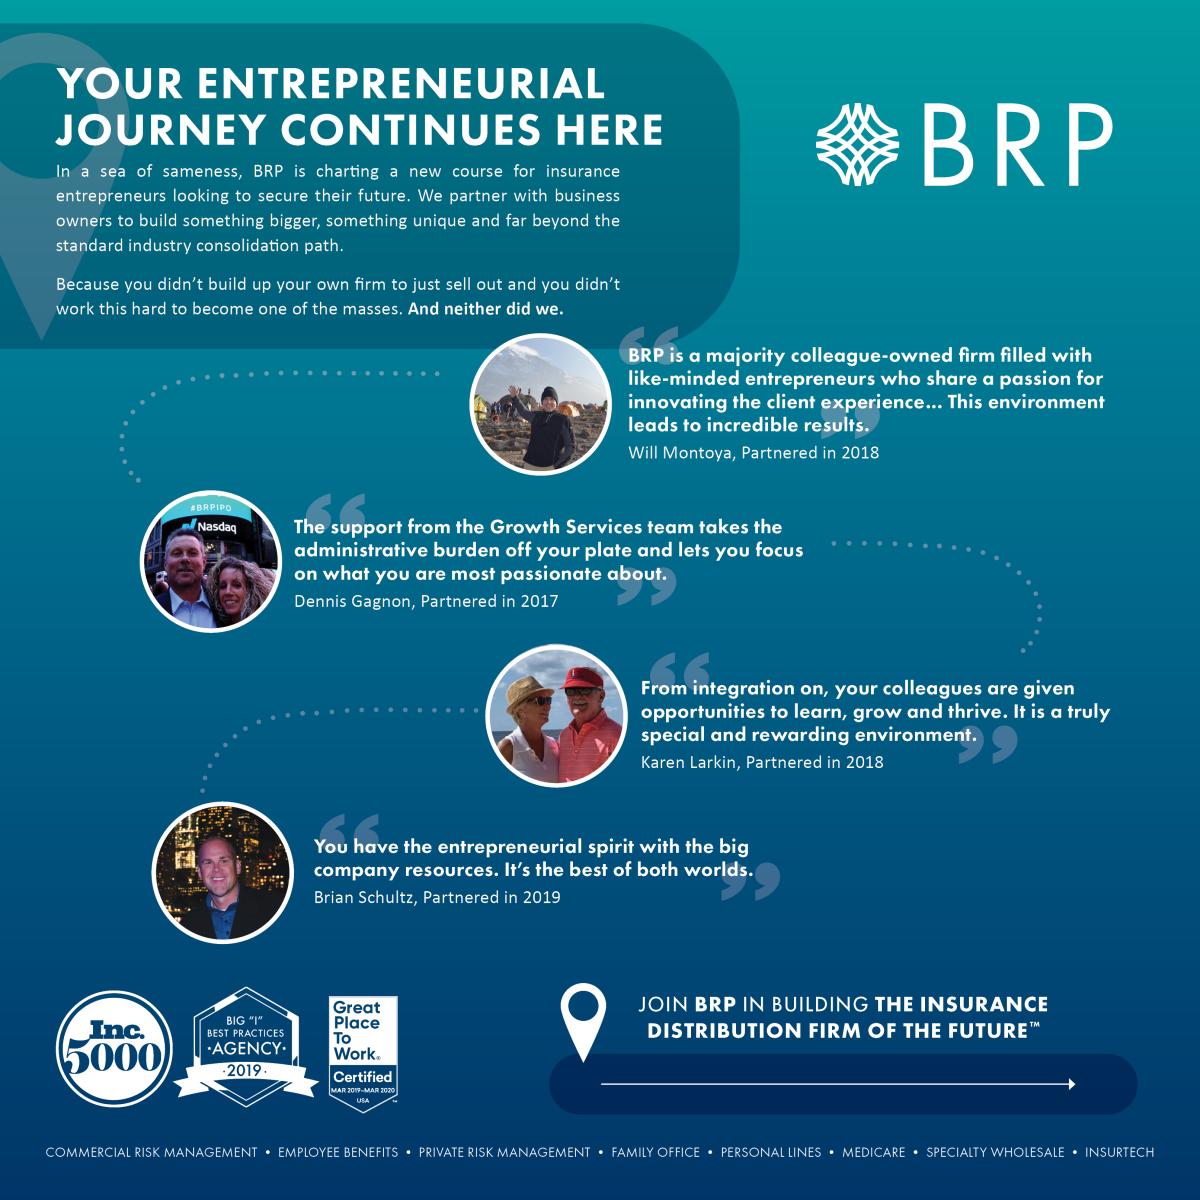 Your entrepreneurial journey begins here